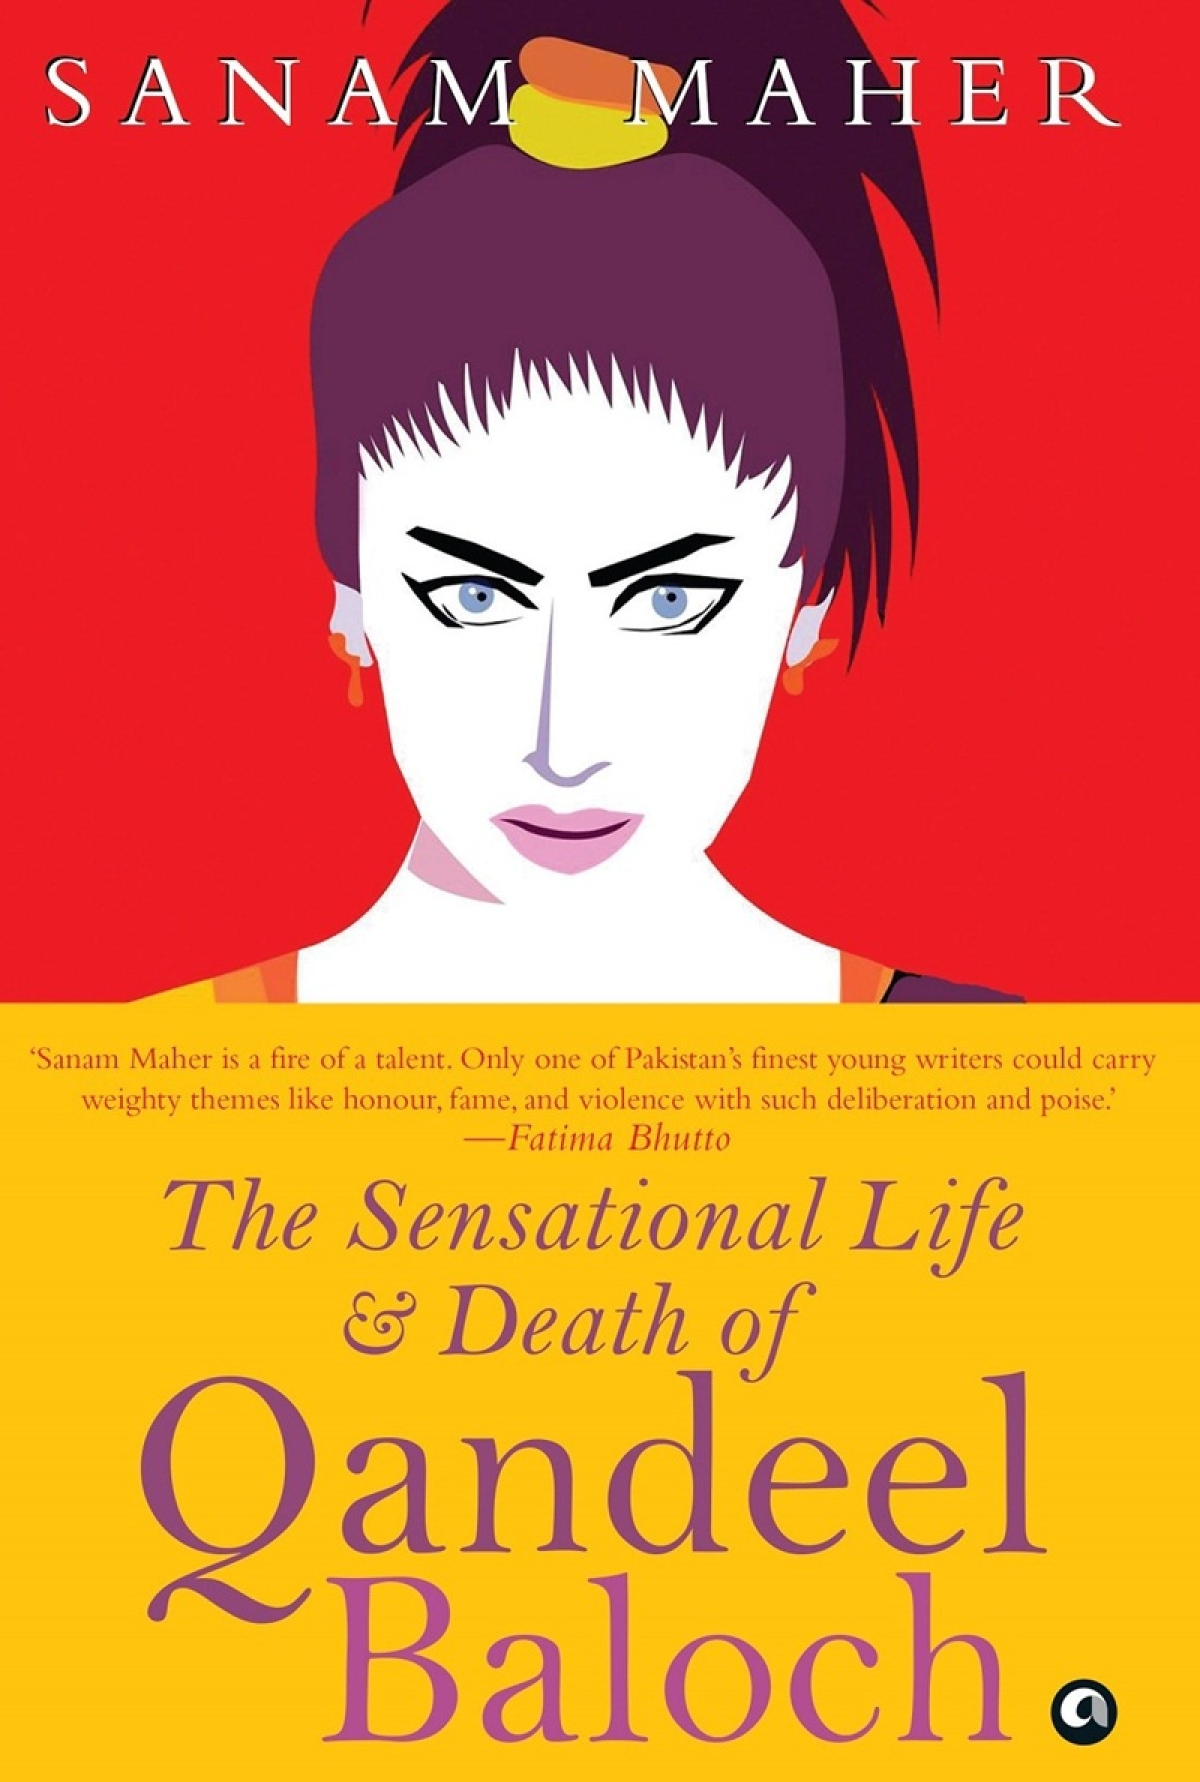 The Sensational Life & Death of Qandeel Baloch by Sanam Maher – Review